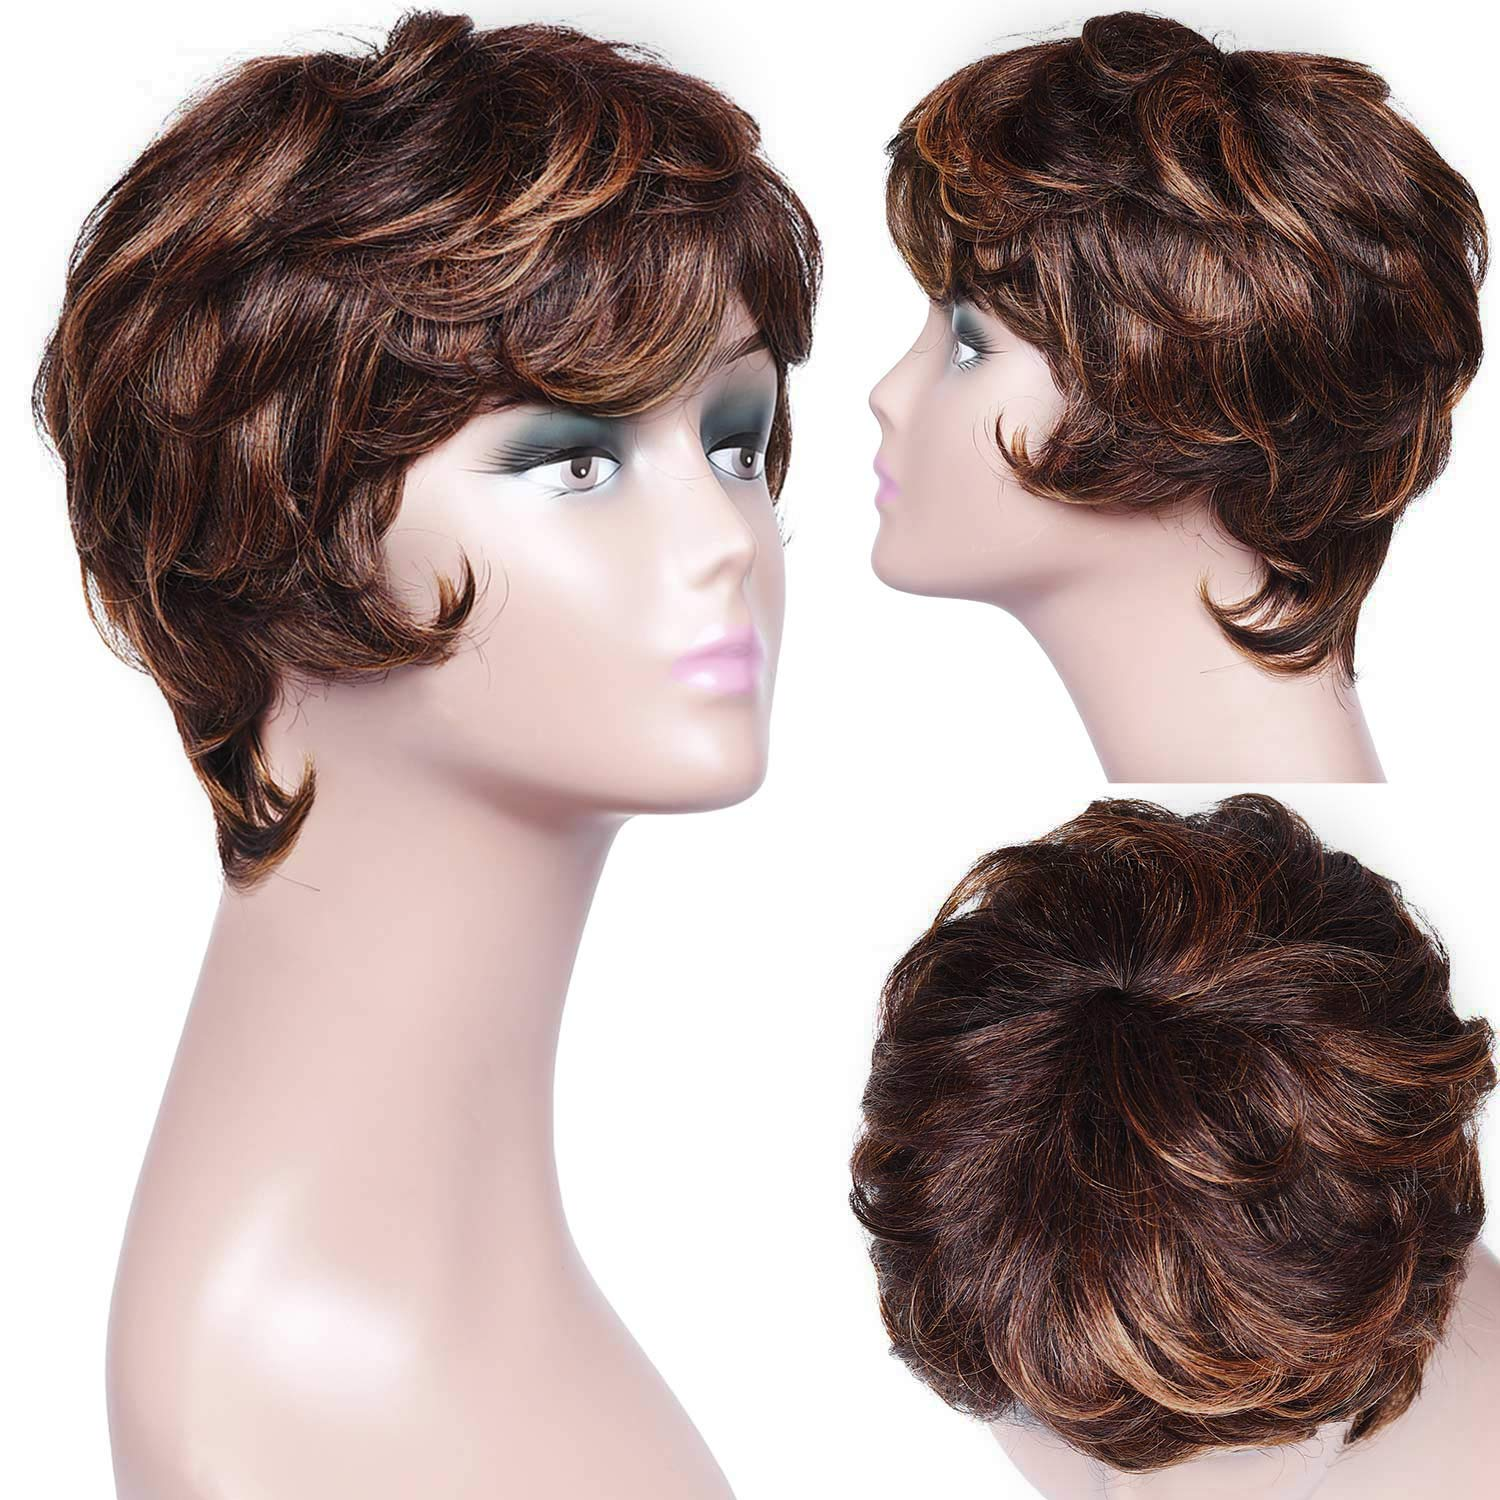 Armmu 8 Inches Human Hair Short Curly Pixie